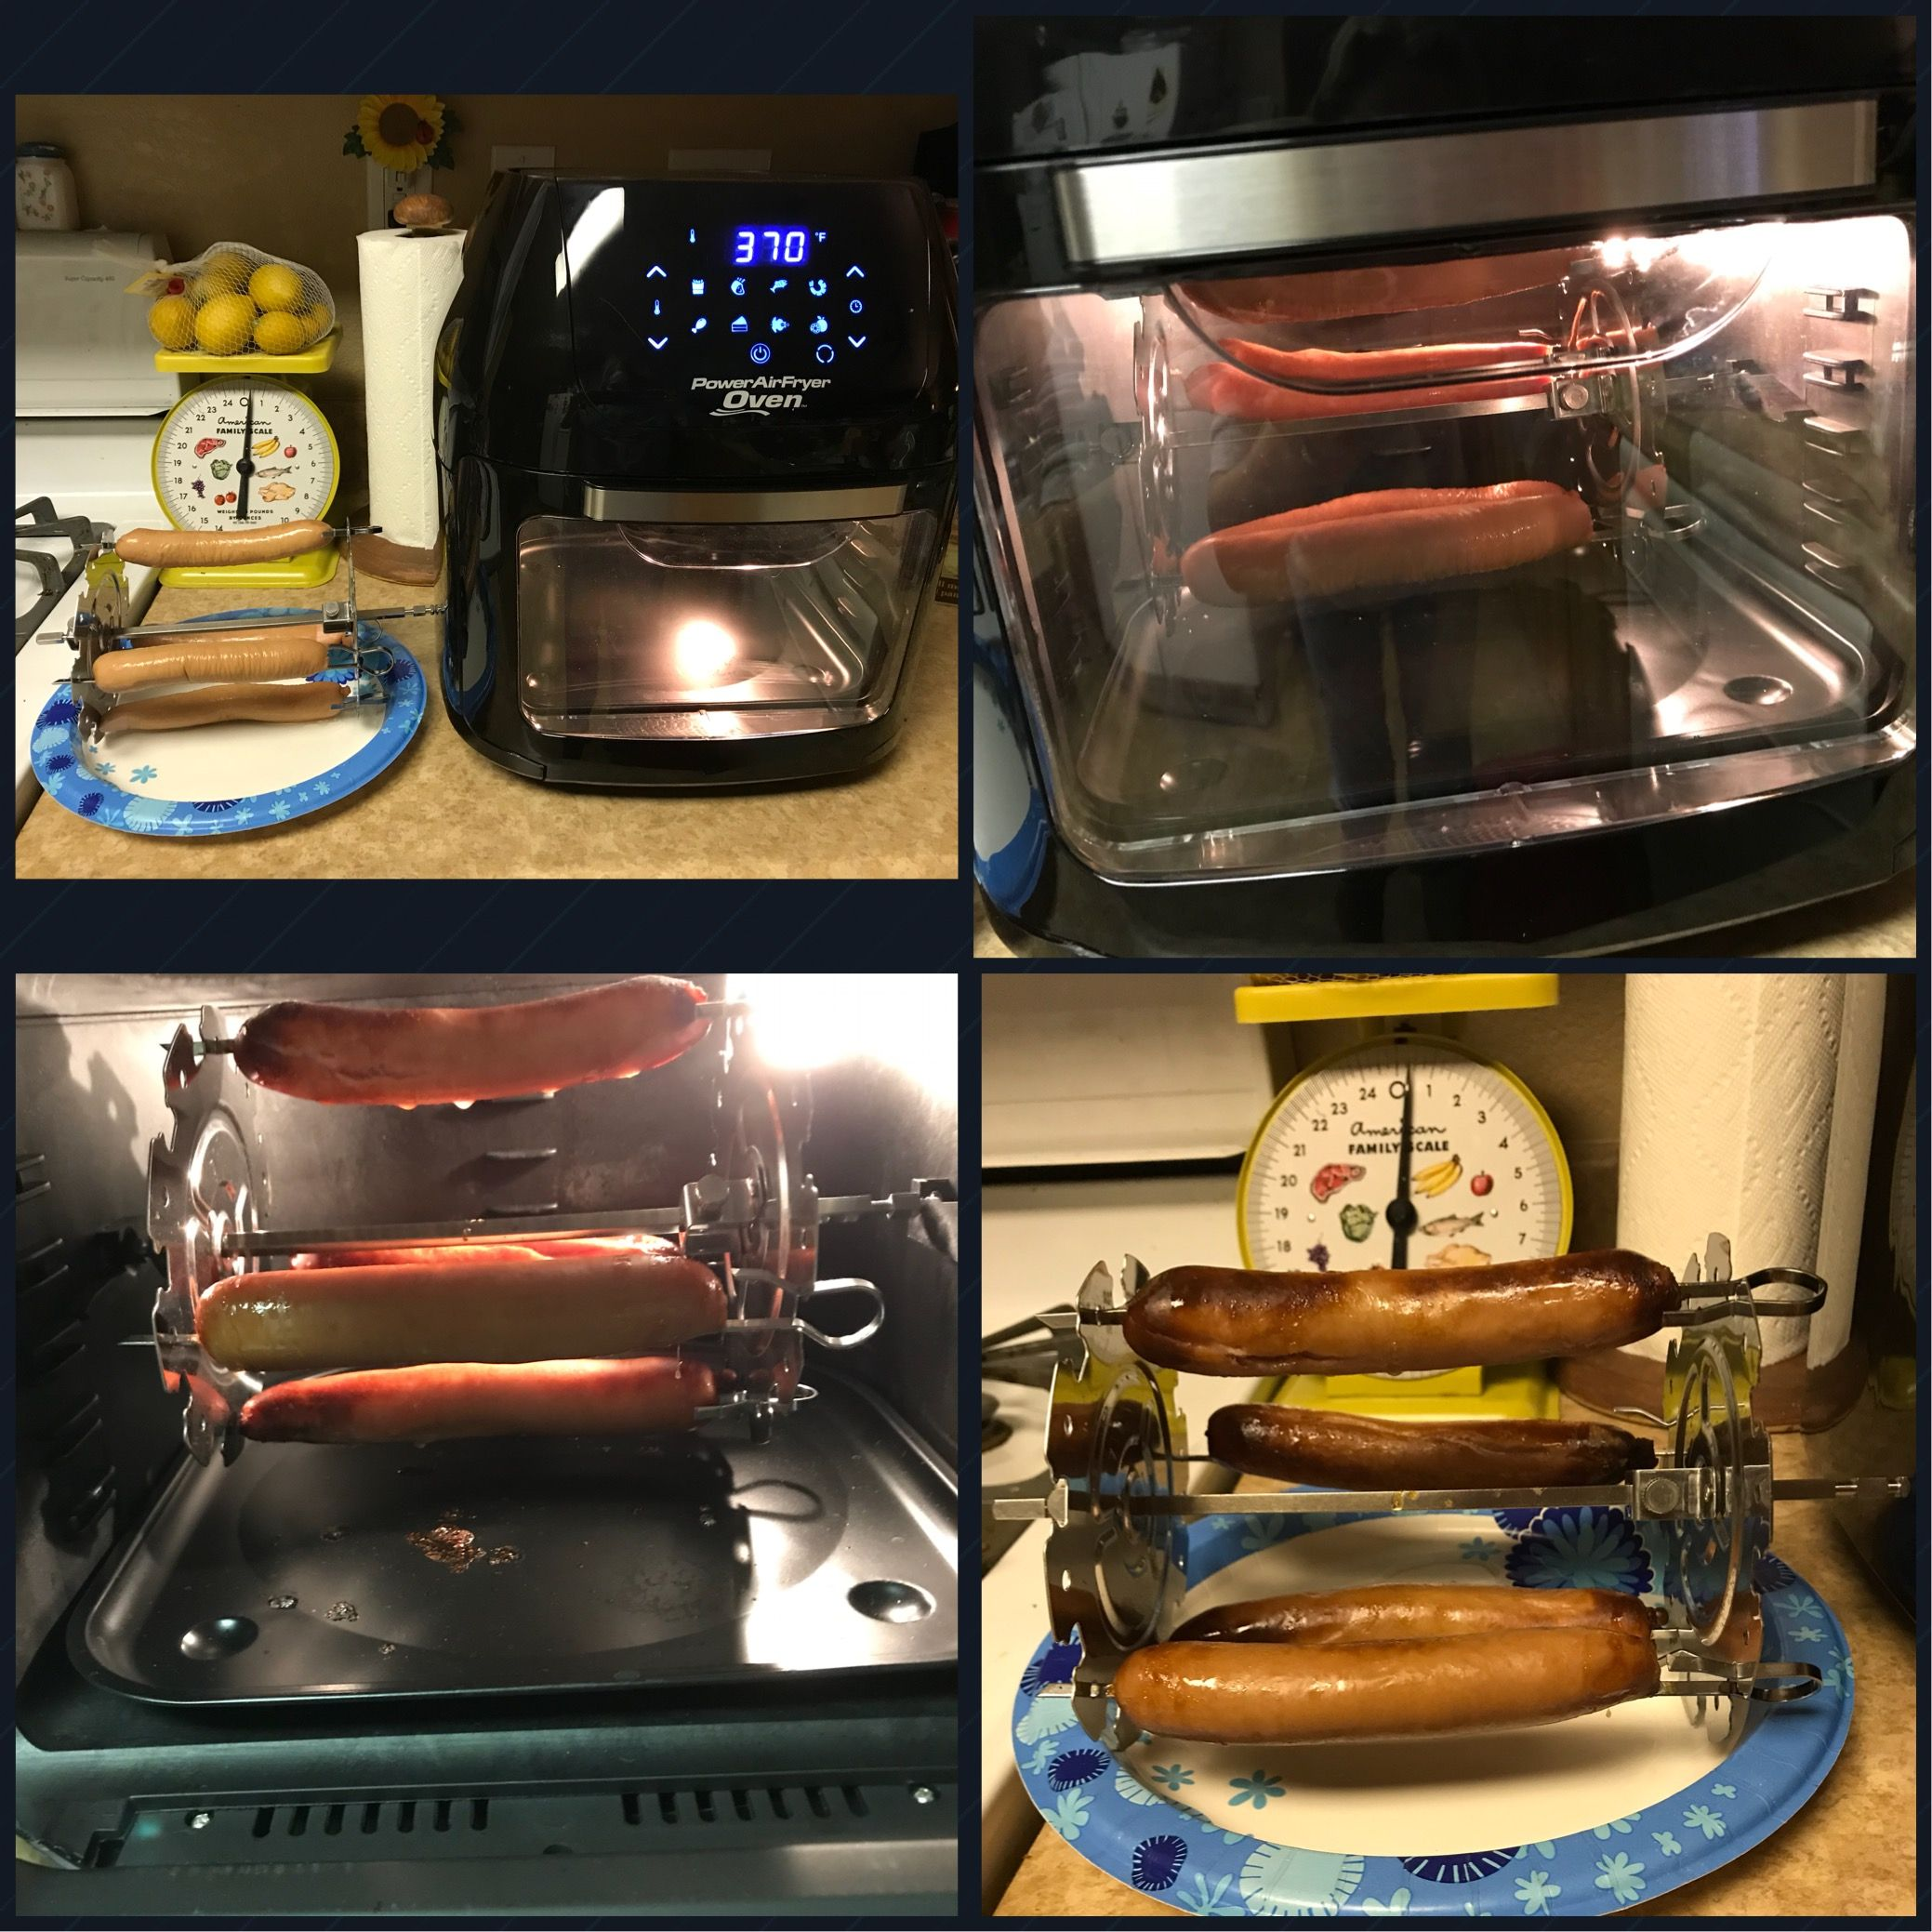 Power Airfryer Oven Hot Dogs On The Skewers Press The Rotisserie